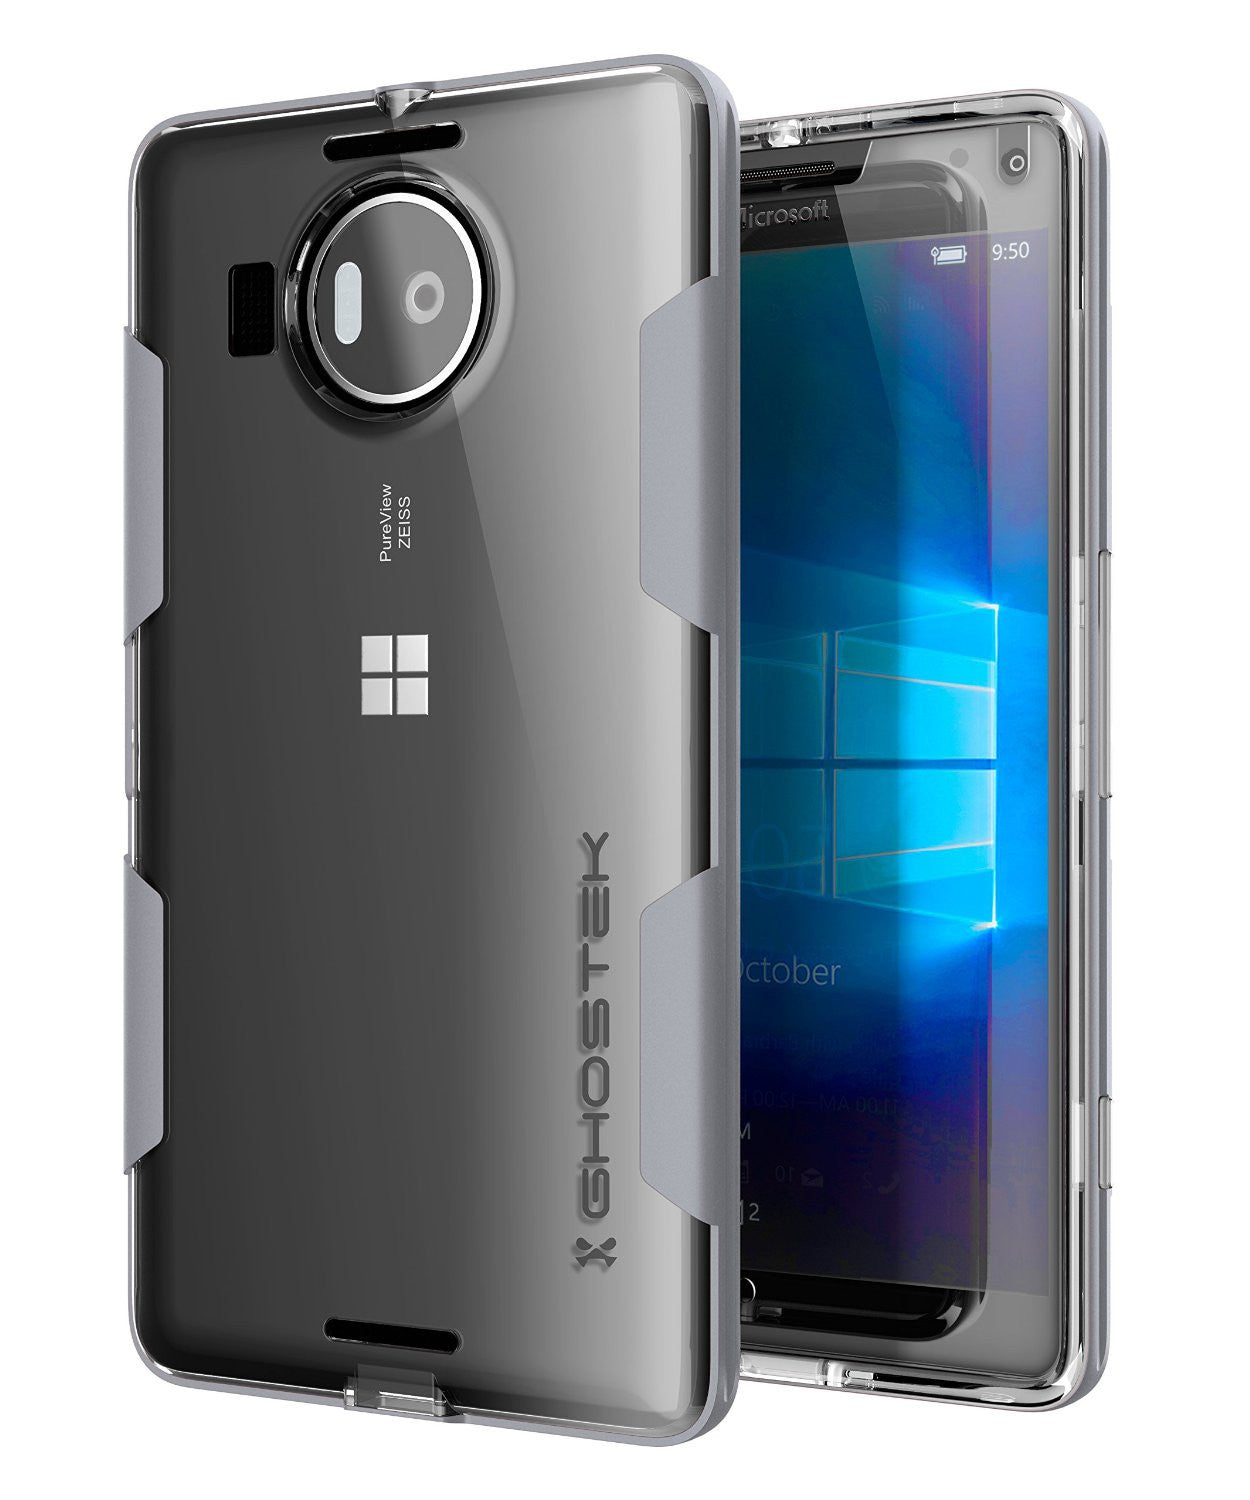 Microsoft 950 XL Case, Ghostek® Cloak Silver Slim Hybrid Impact Armor | Lifetime Warranty Exchange